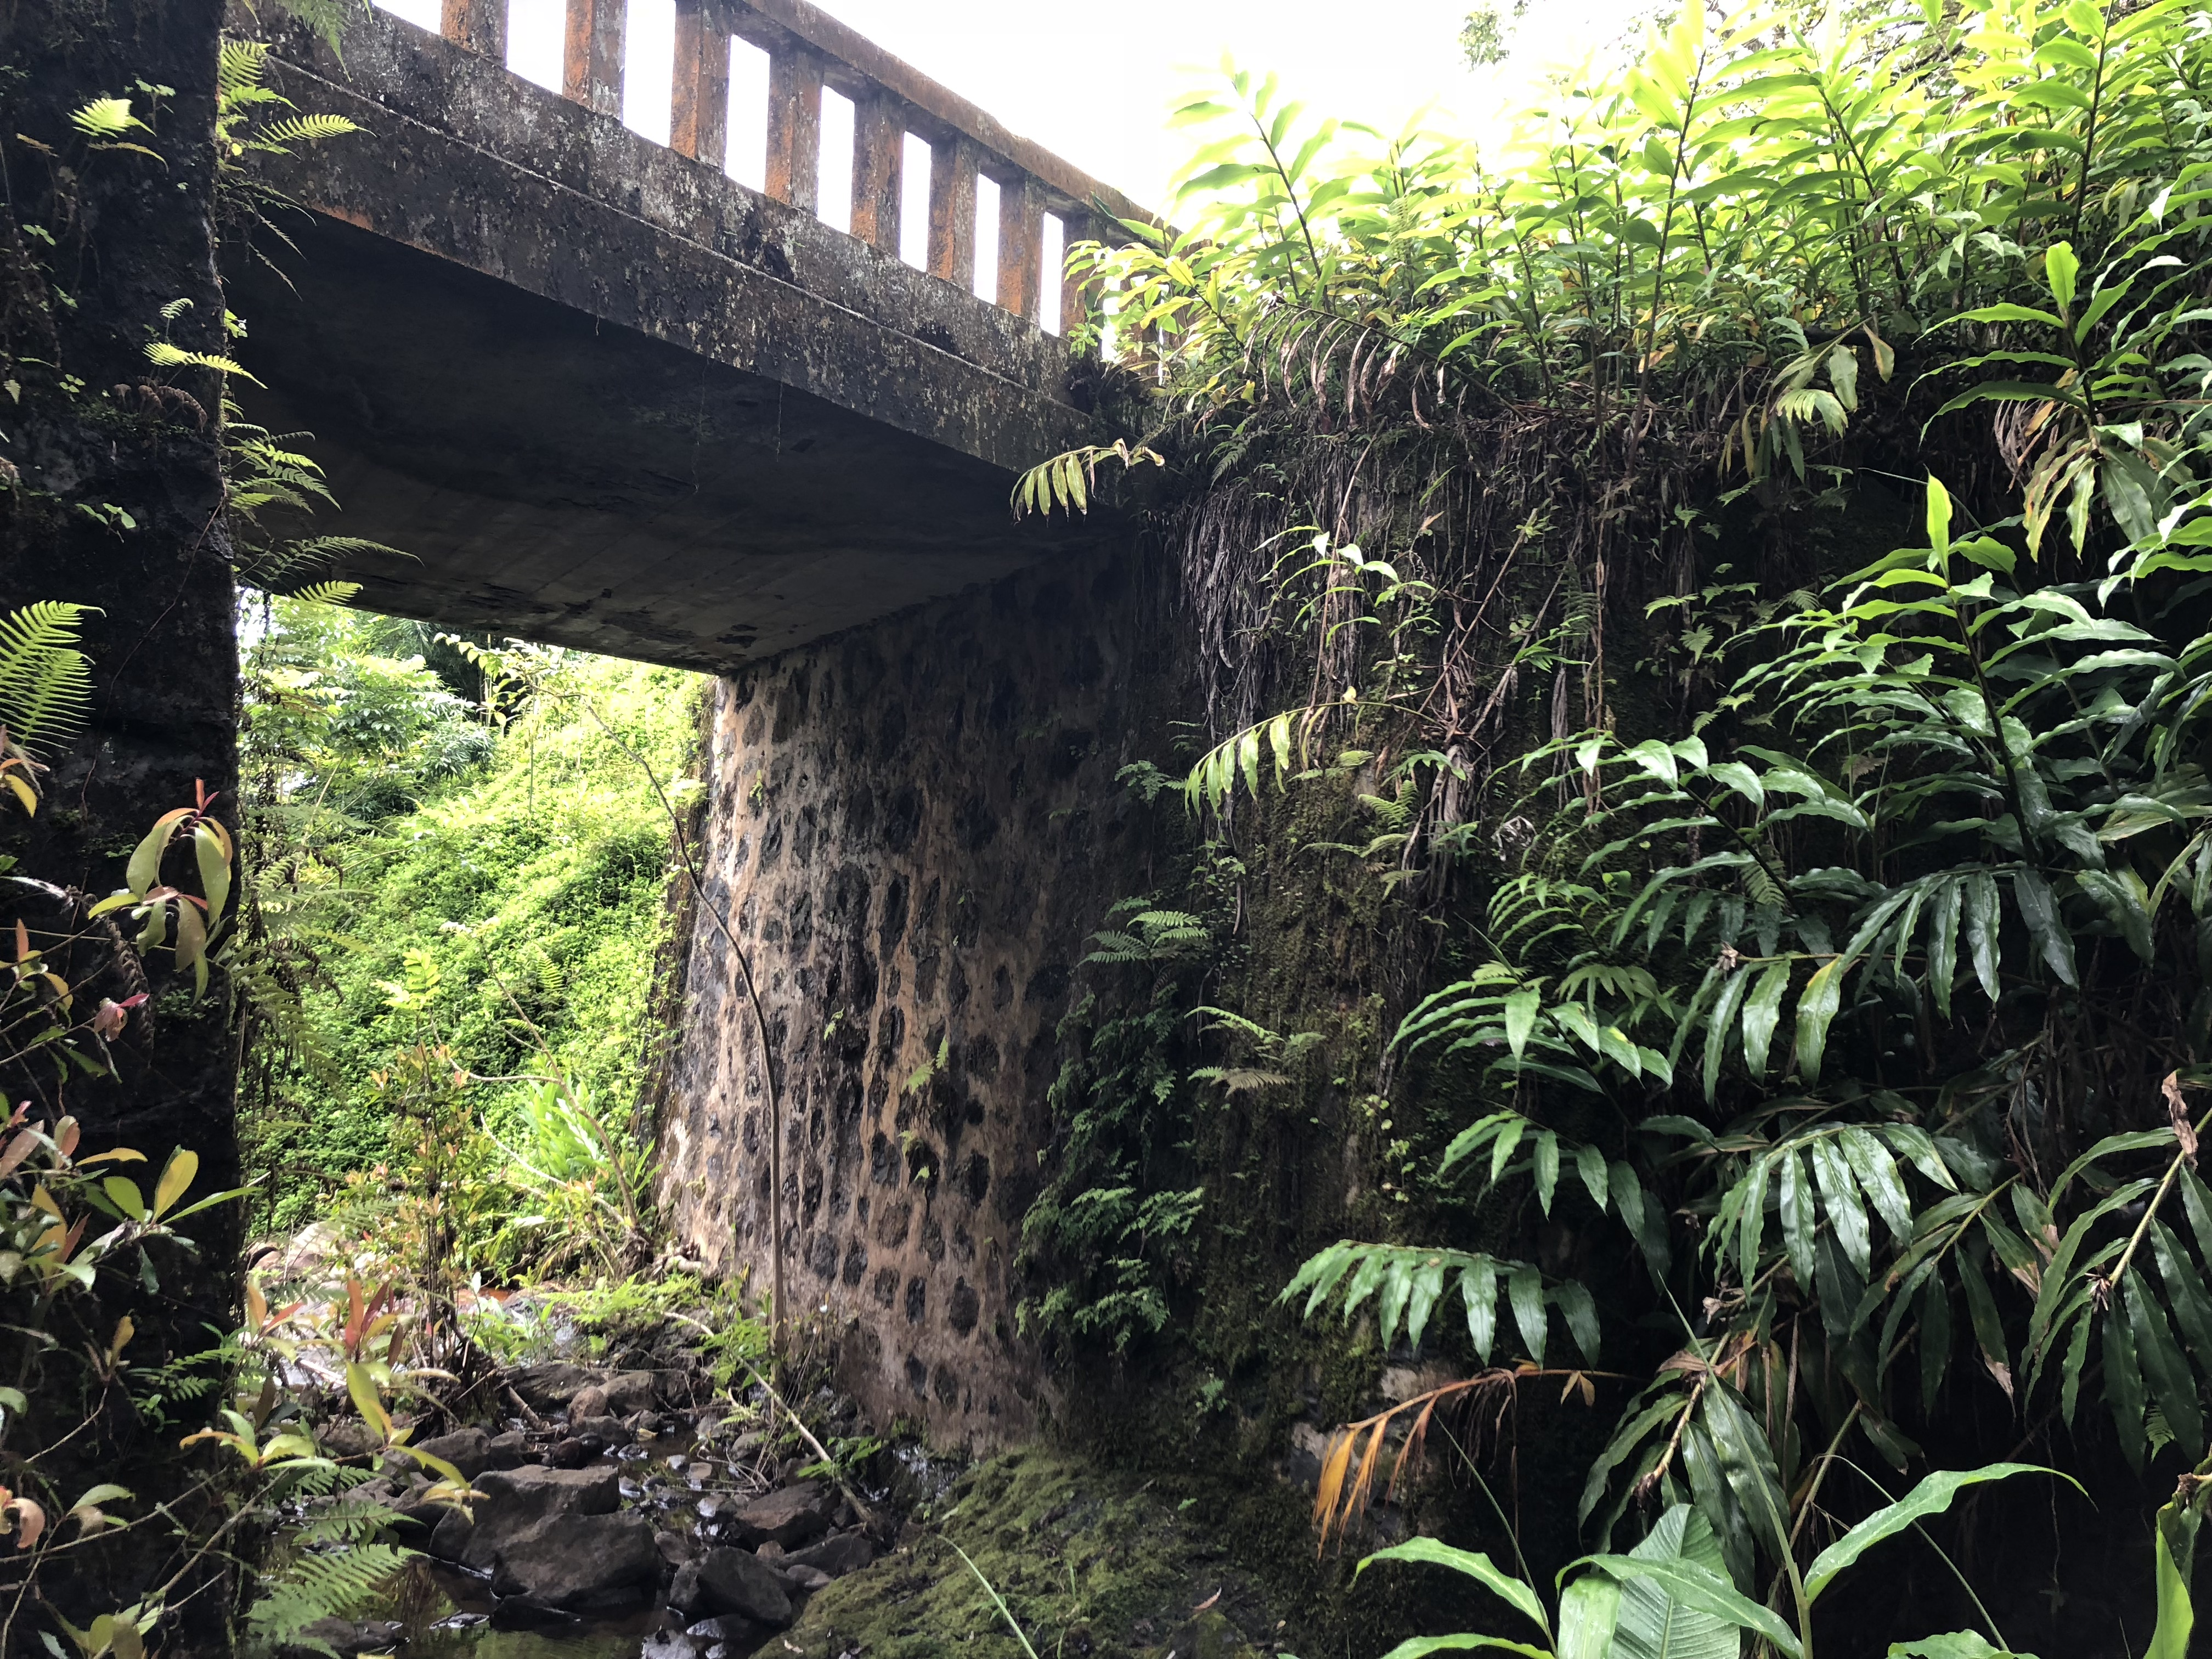 BRIDGE #5: MAKANALI STREAM BRIDGE